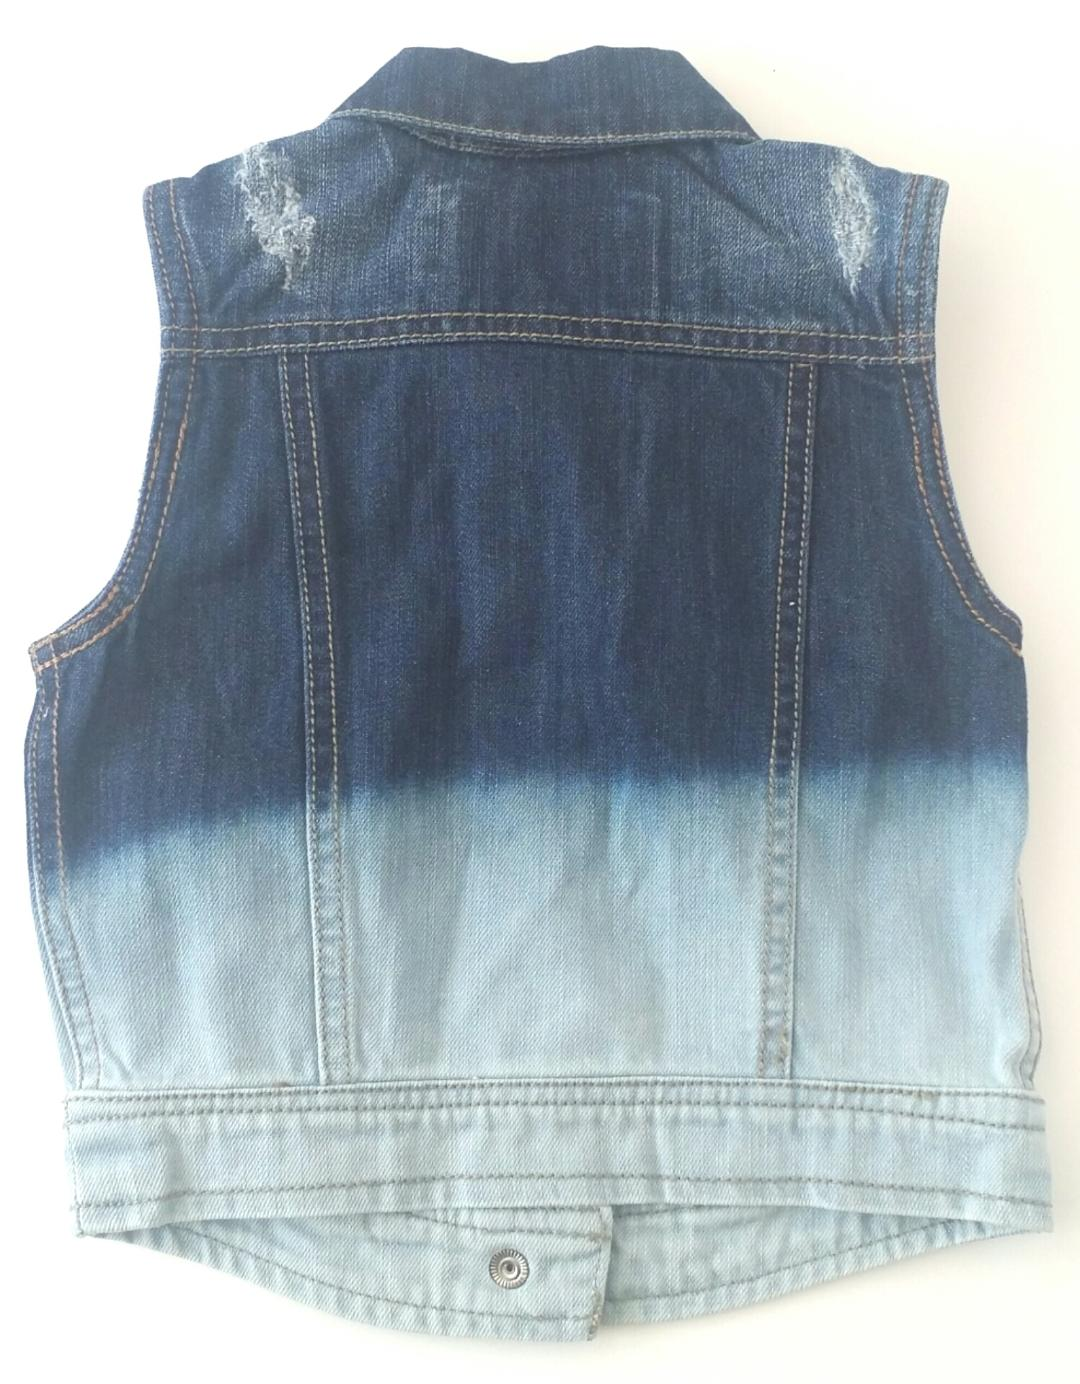 Ruum-3-YEARS-Denim-Vest_2072248B.jpg